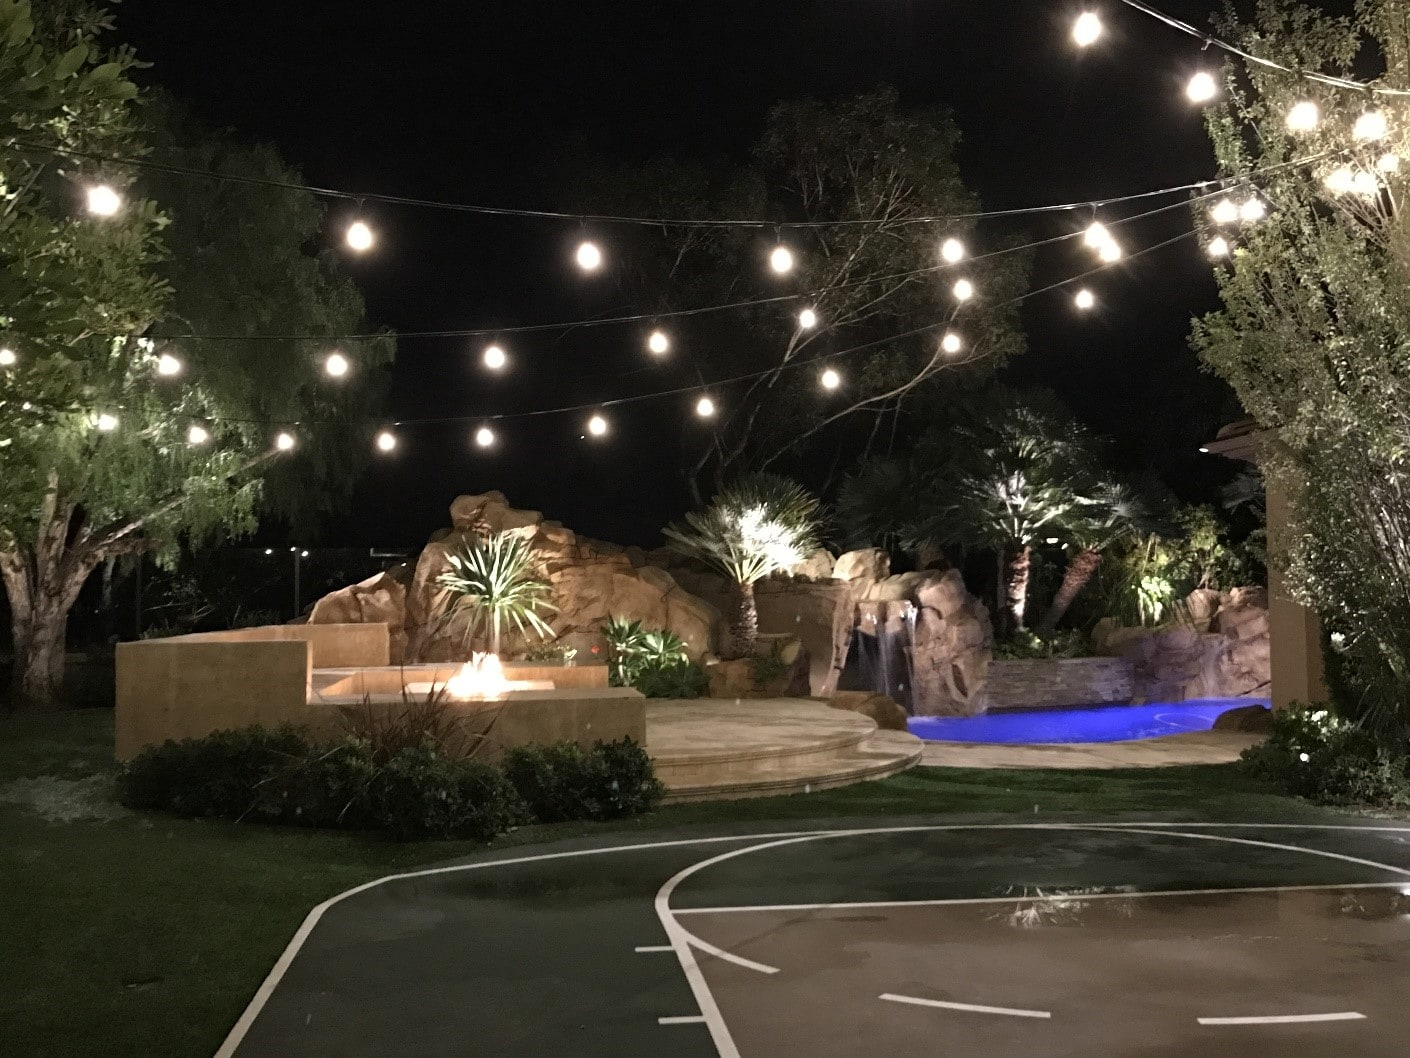 String Lighting for Night Time Activity